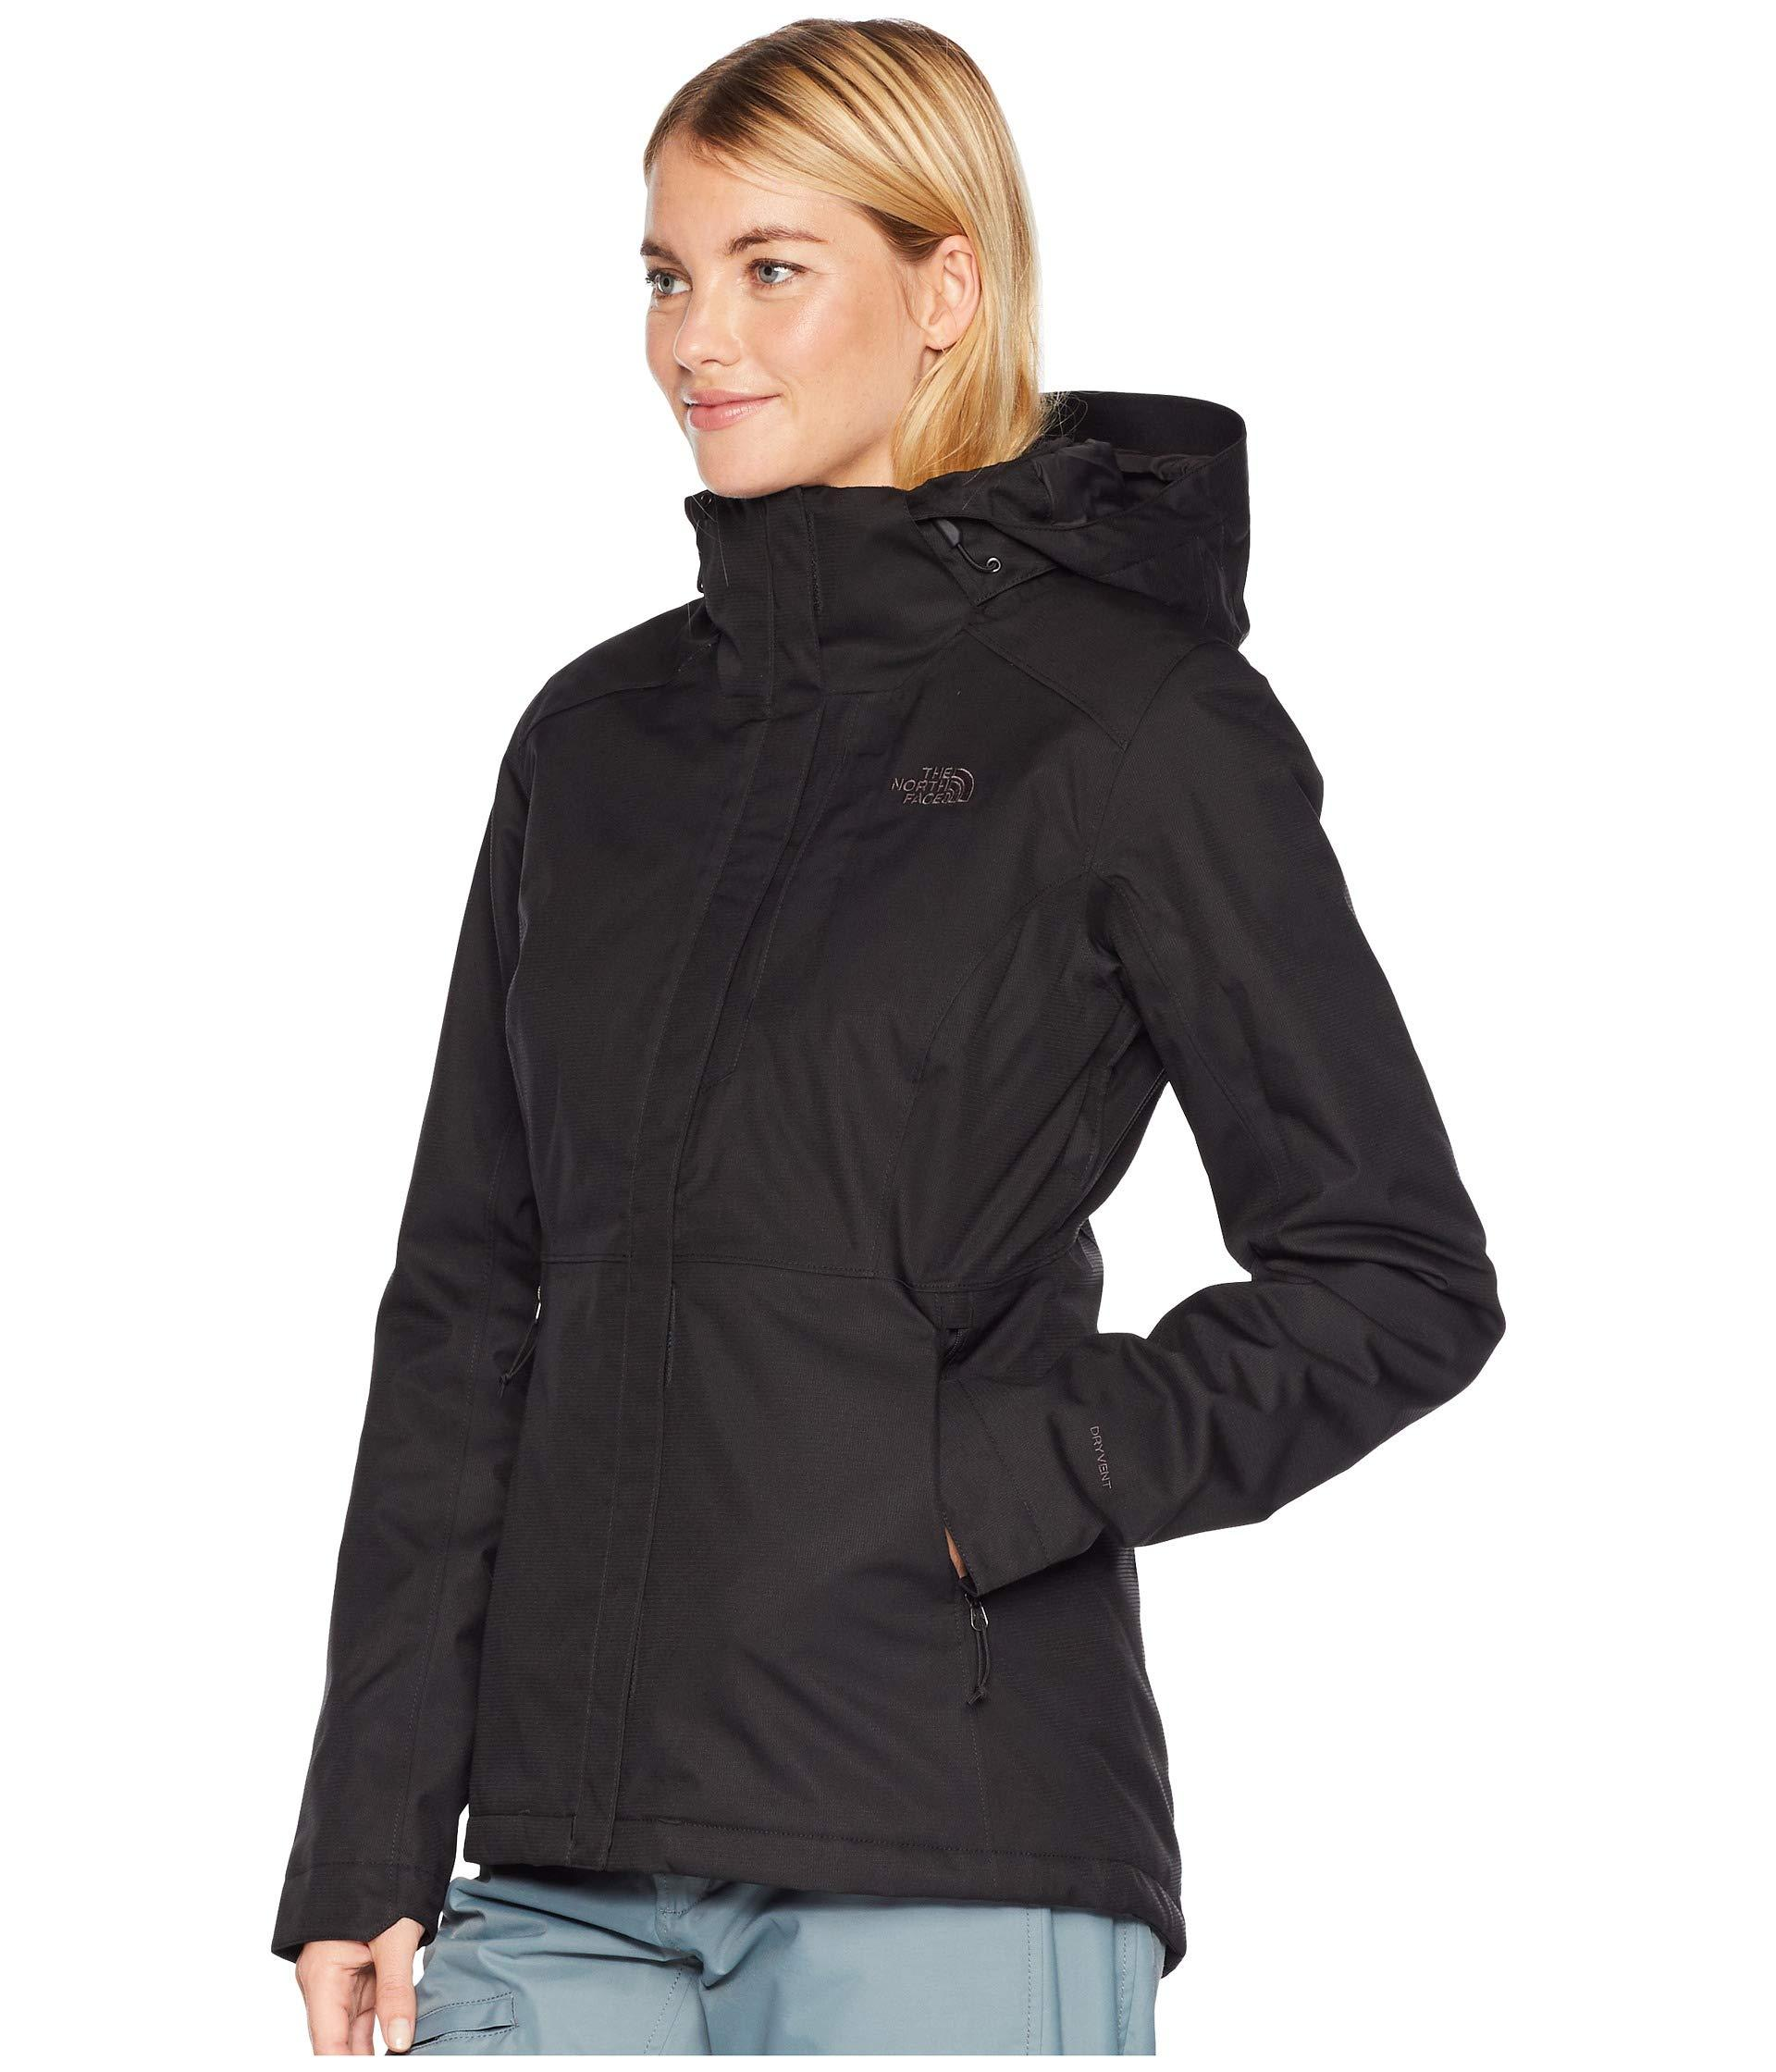 01e394adbb11 The North Face - Black Inlux 2.0 Insulated Jacket - Lyst. View fullscreen